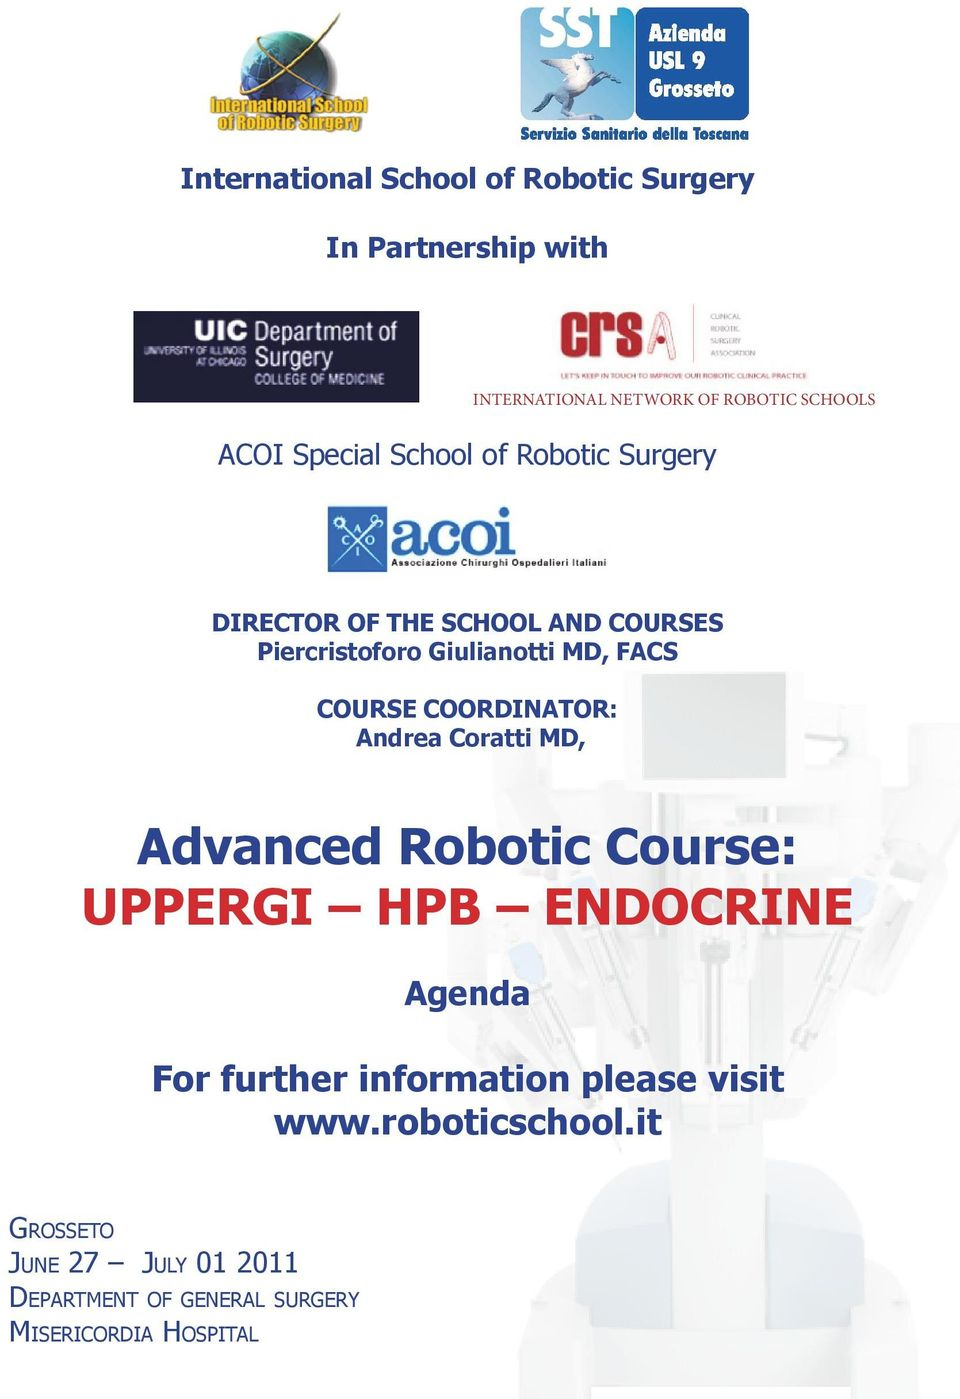 COURSE COORDINATOR: Andrea Coratti MD, Advanced Robotic Course: UPPERGI HPB ENDOCRINE Agenda For further